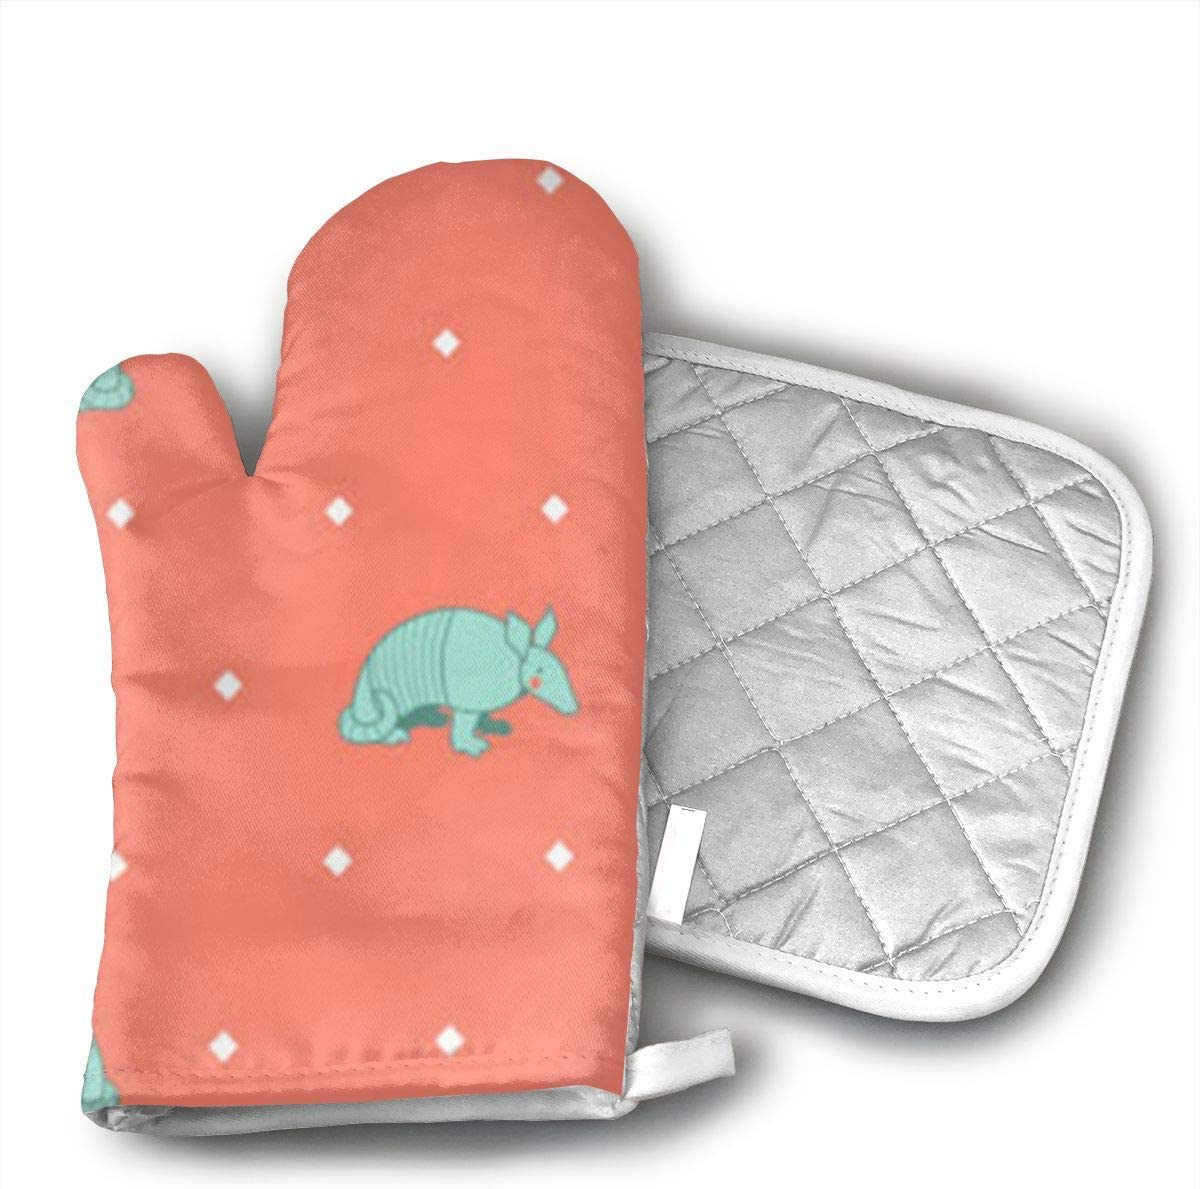 Teuwia Southwestern Armadillo On Yellow Oven Mitts and Pot Holders Baking Oven Gloves Hot Pads Set Heat Resistant for Finger Hand Wrist Protection